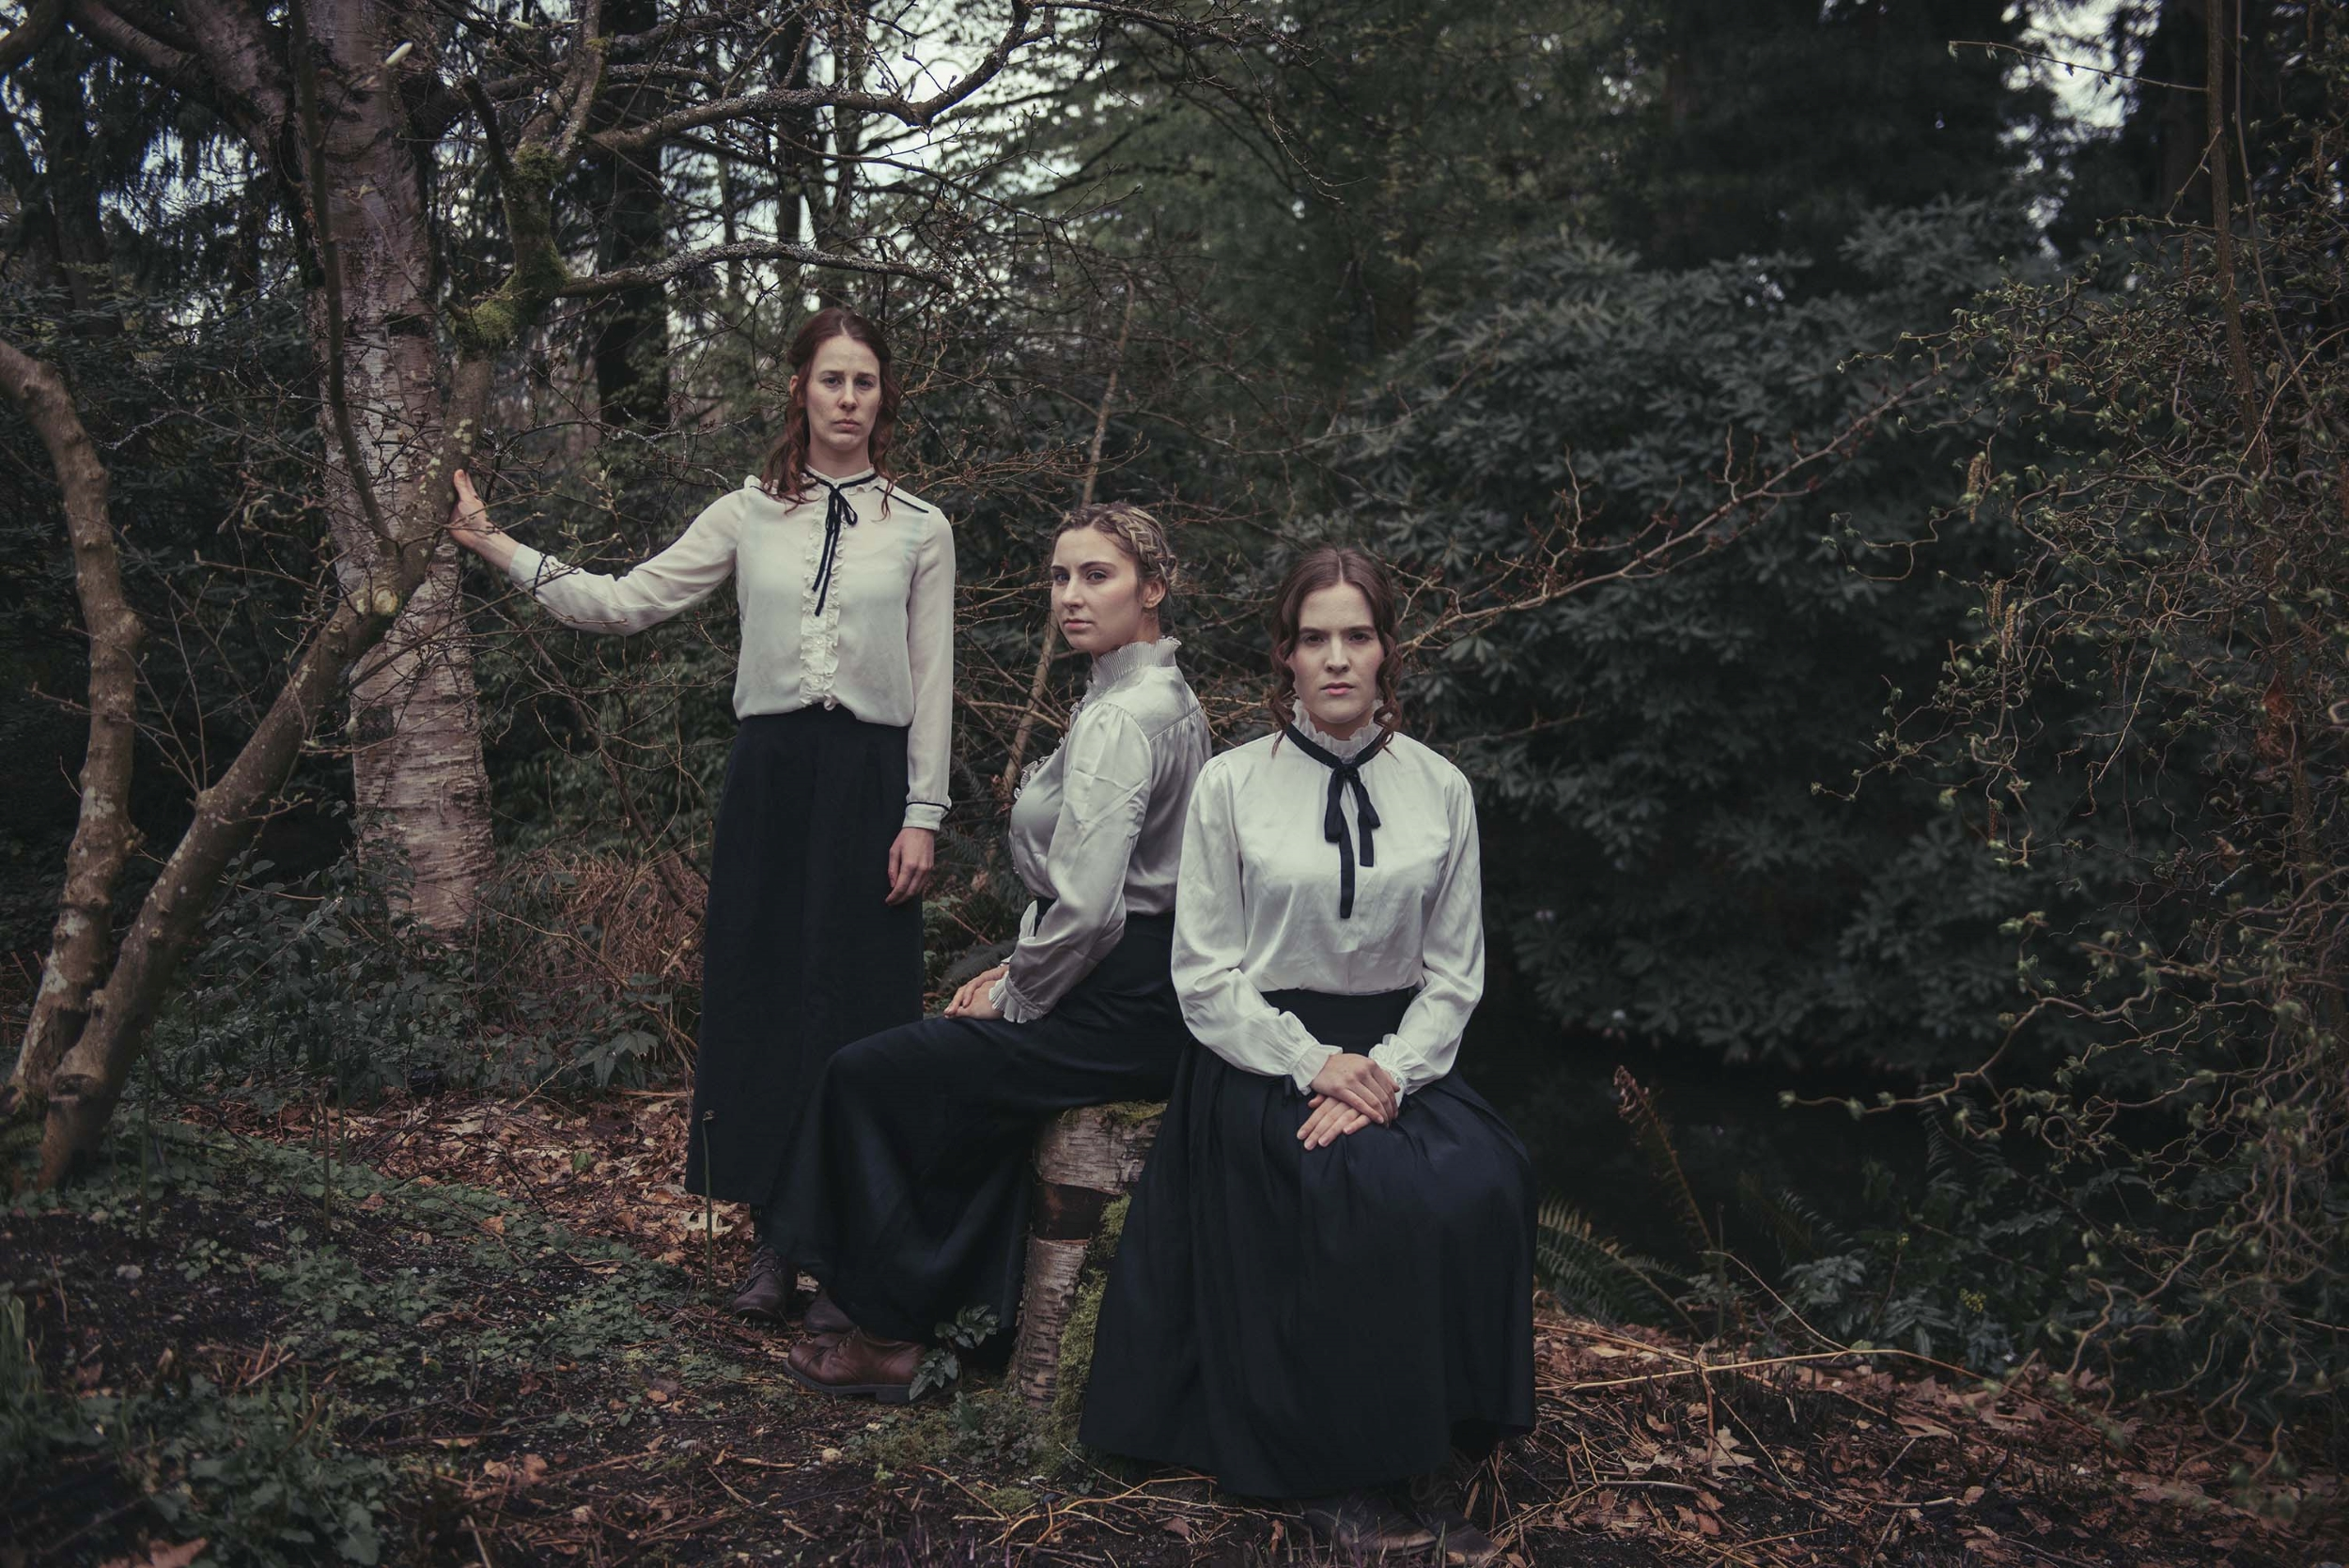 Women cast members, from left: Leah Beaudry, Laura Carly Miller, Sydney Doberstein. Photo by Phoebe Miu.